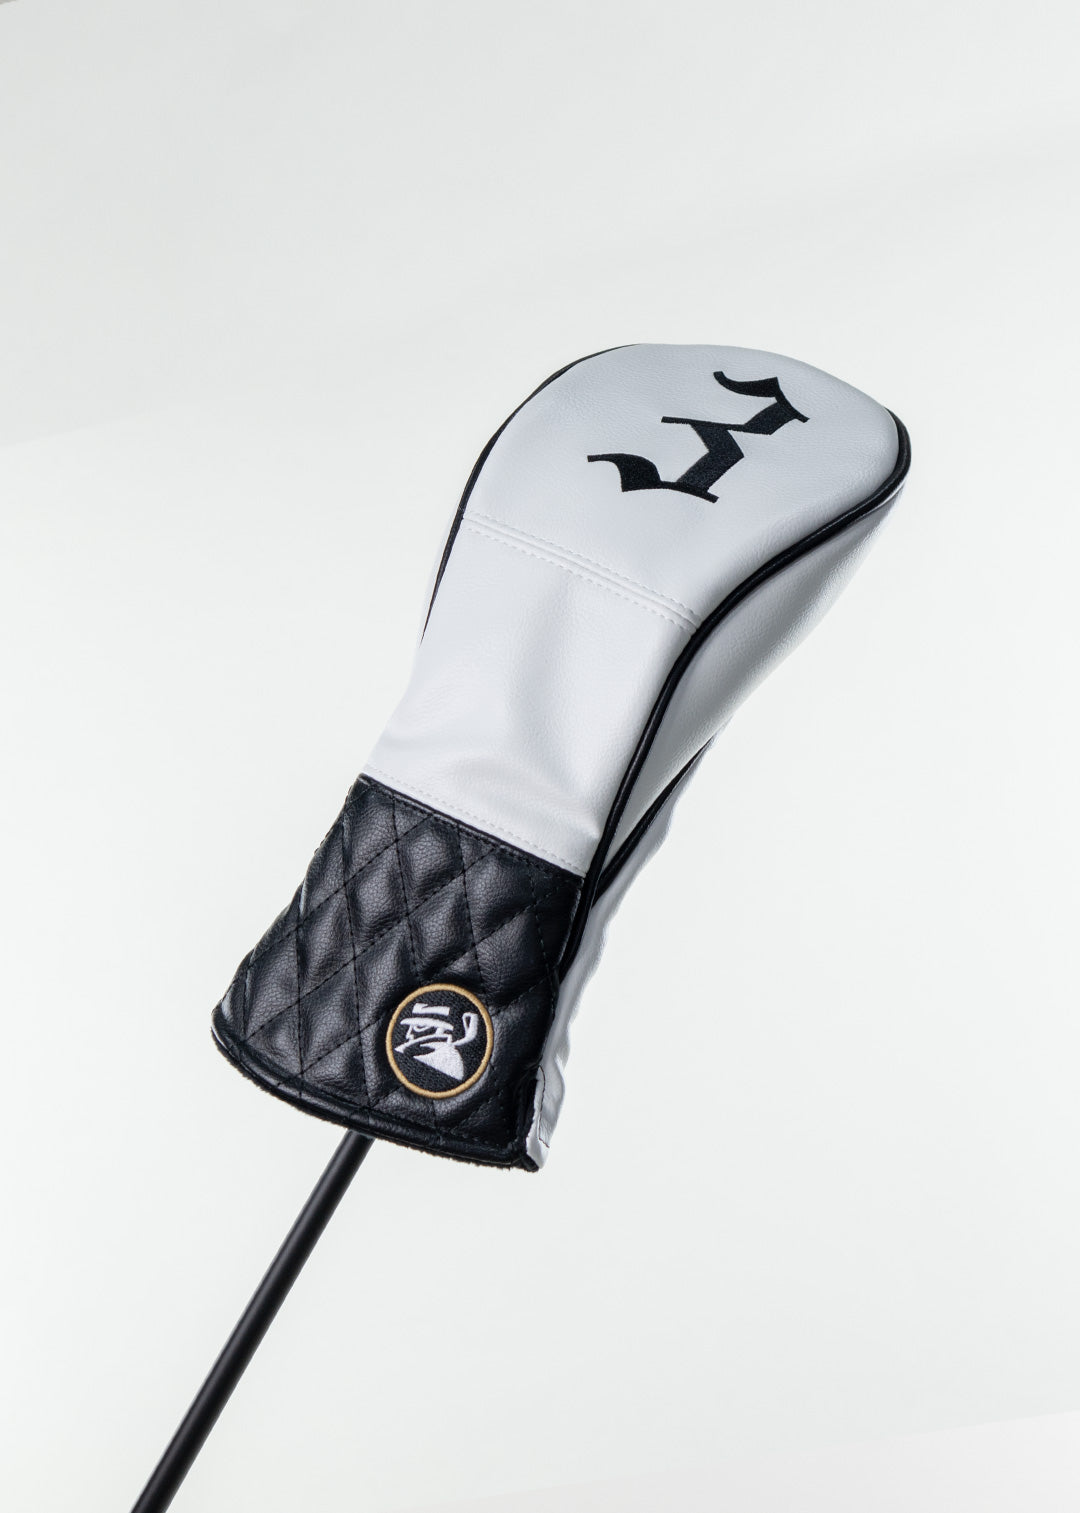 MyGolfSpy Staff Collection | 3 Wood Headcover